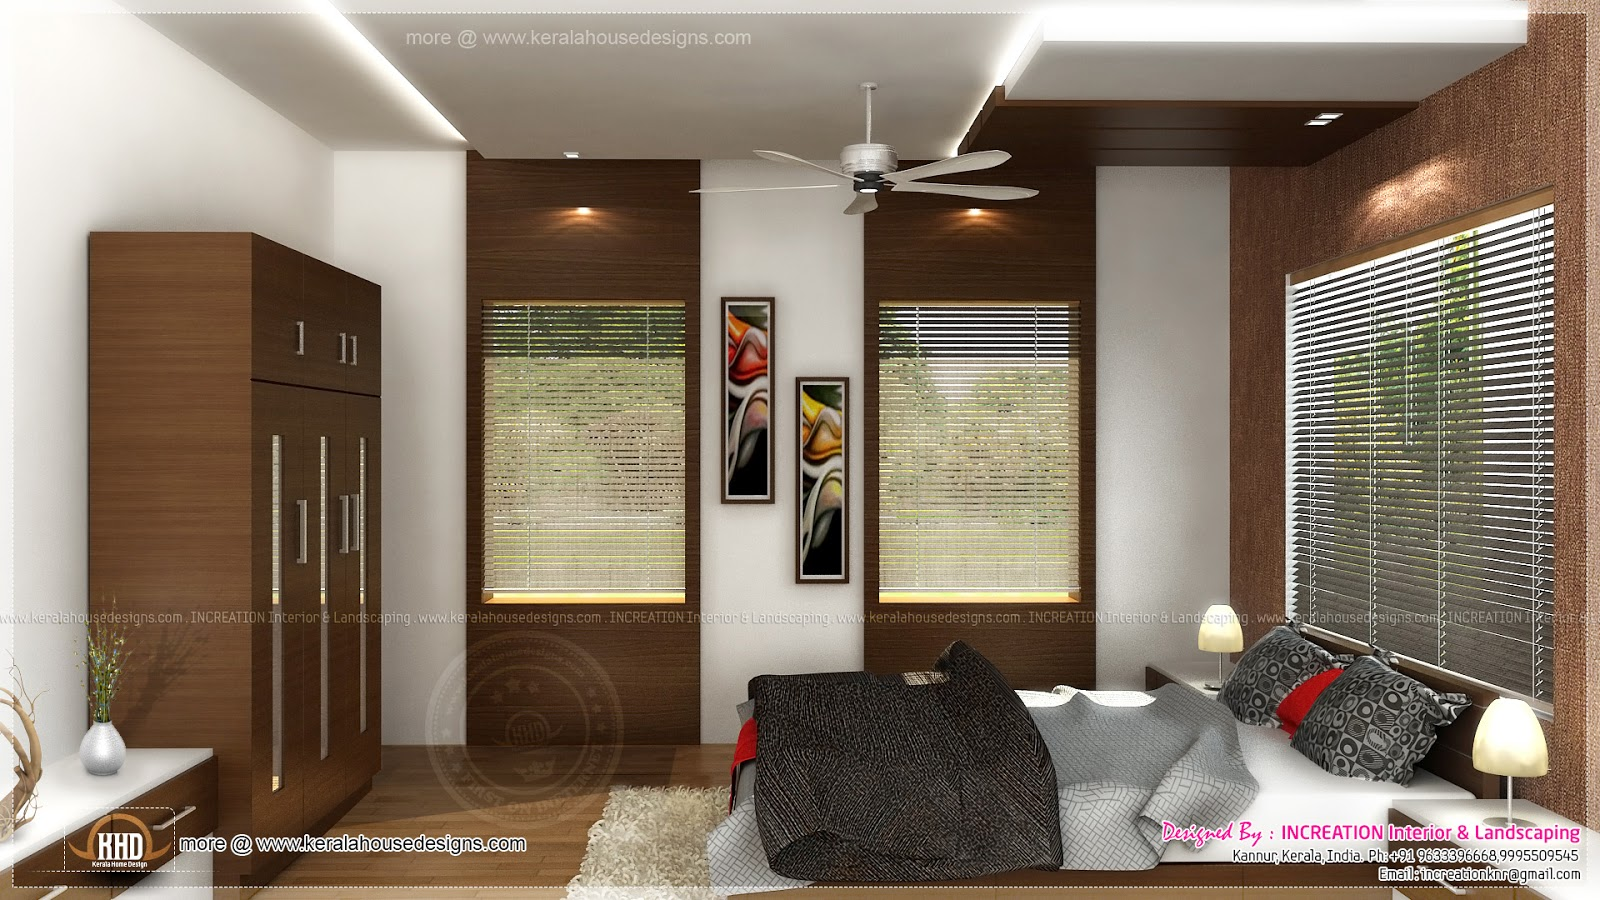 Interior designs from kannur kerala kerala home design for House interior design pictures